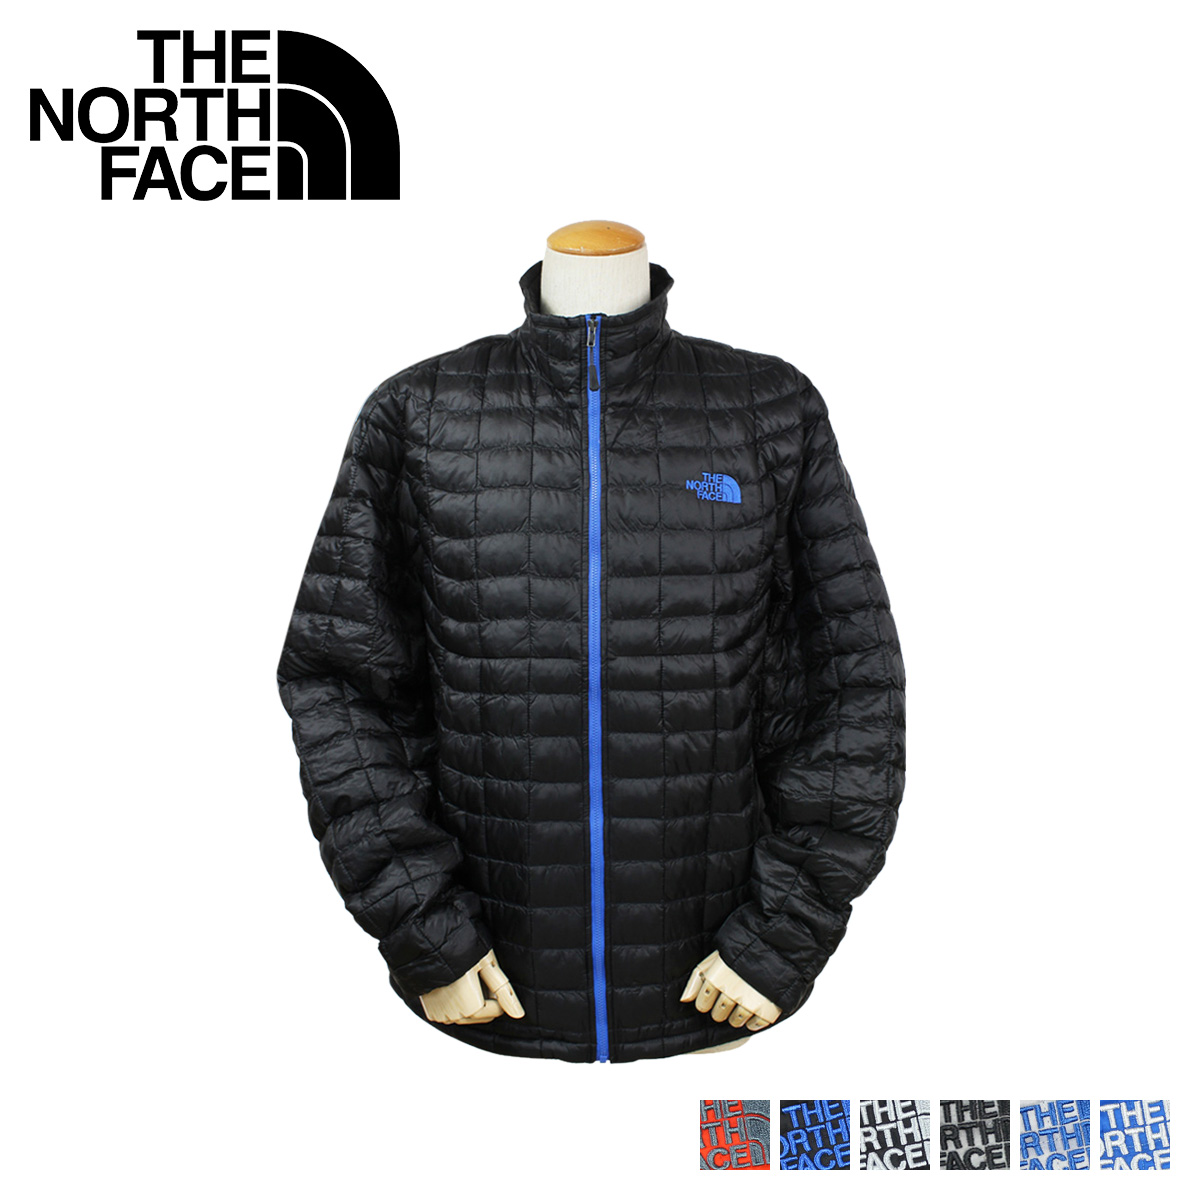 Whats up Sports  THE NORTH FACE north face jacket MEN S THERMOBALL ... 5cb5bad8f144